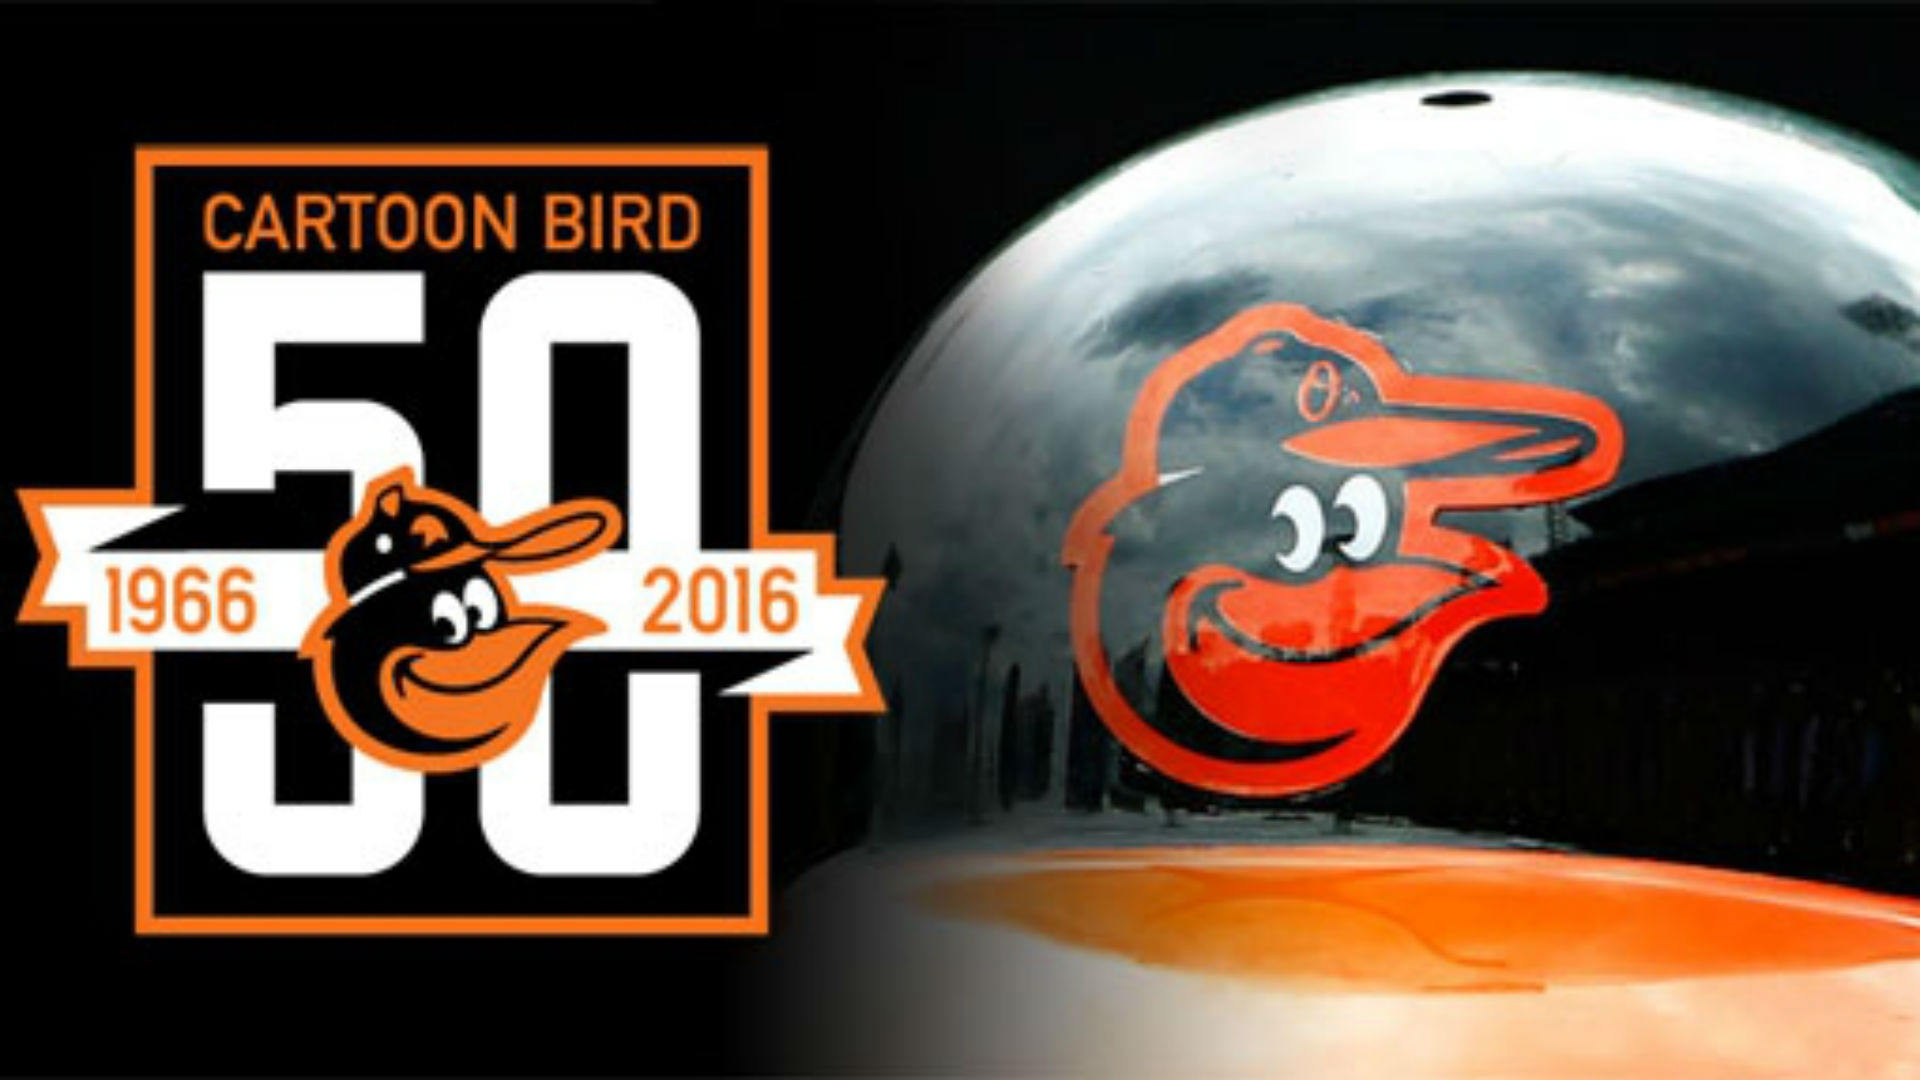 624474a7d71 All hail the Orioles  cartoon bird on its 50th anniversary ...